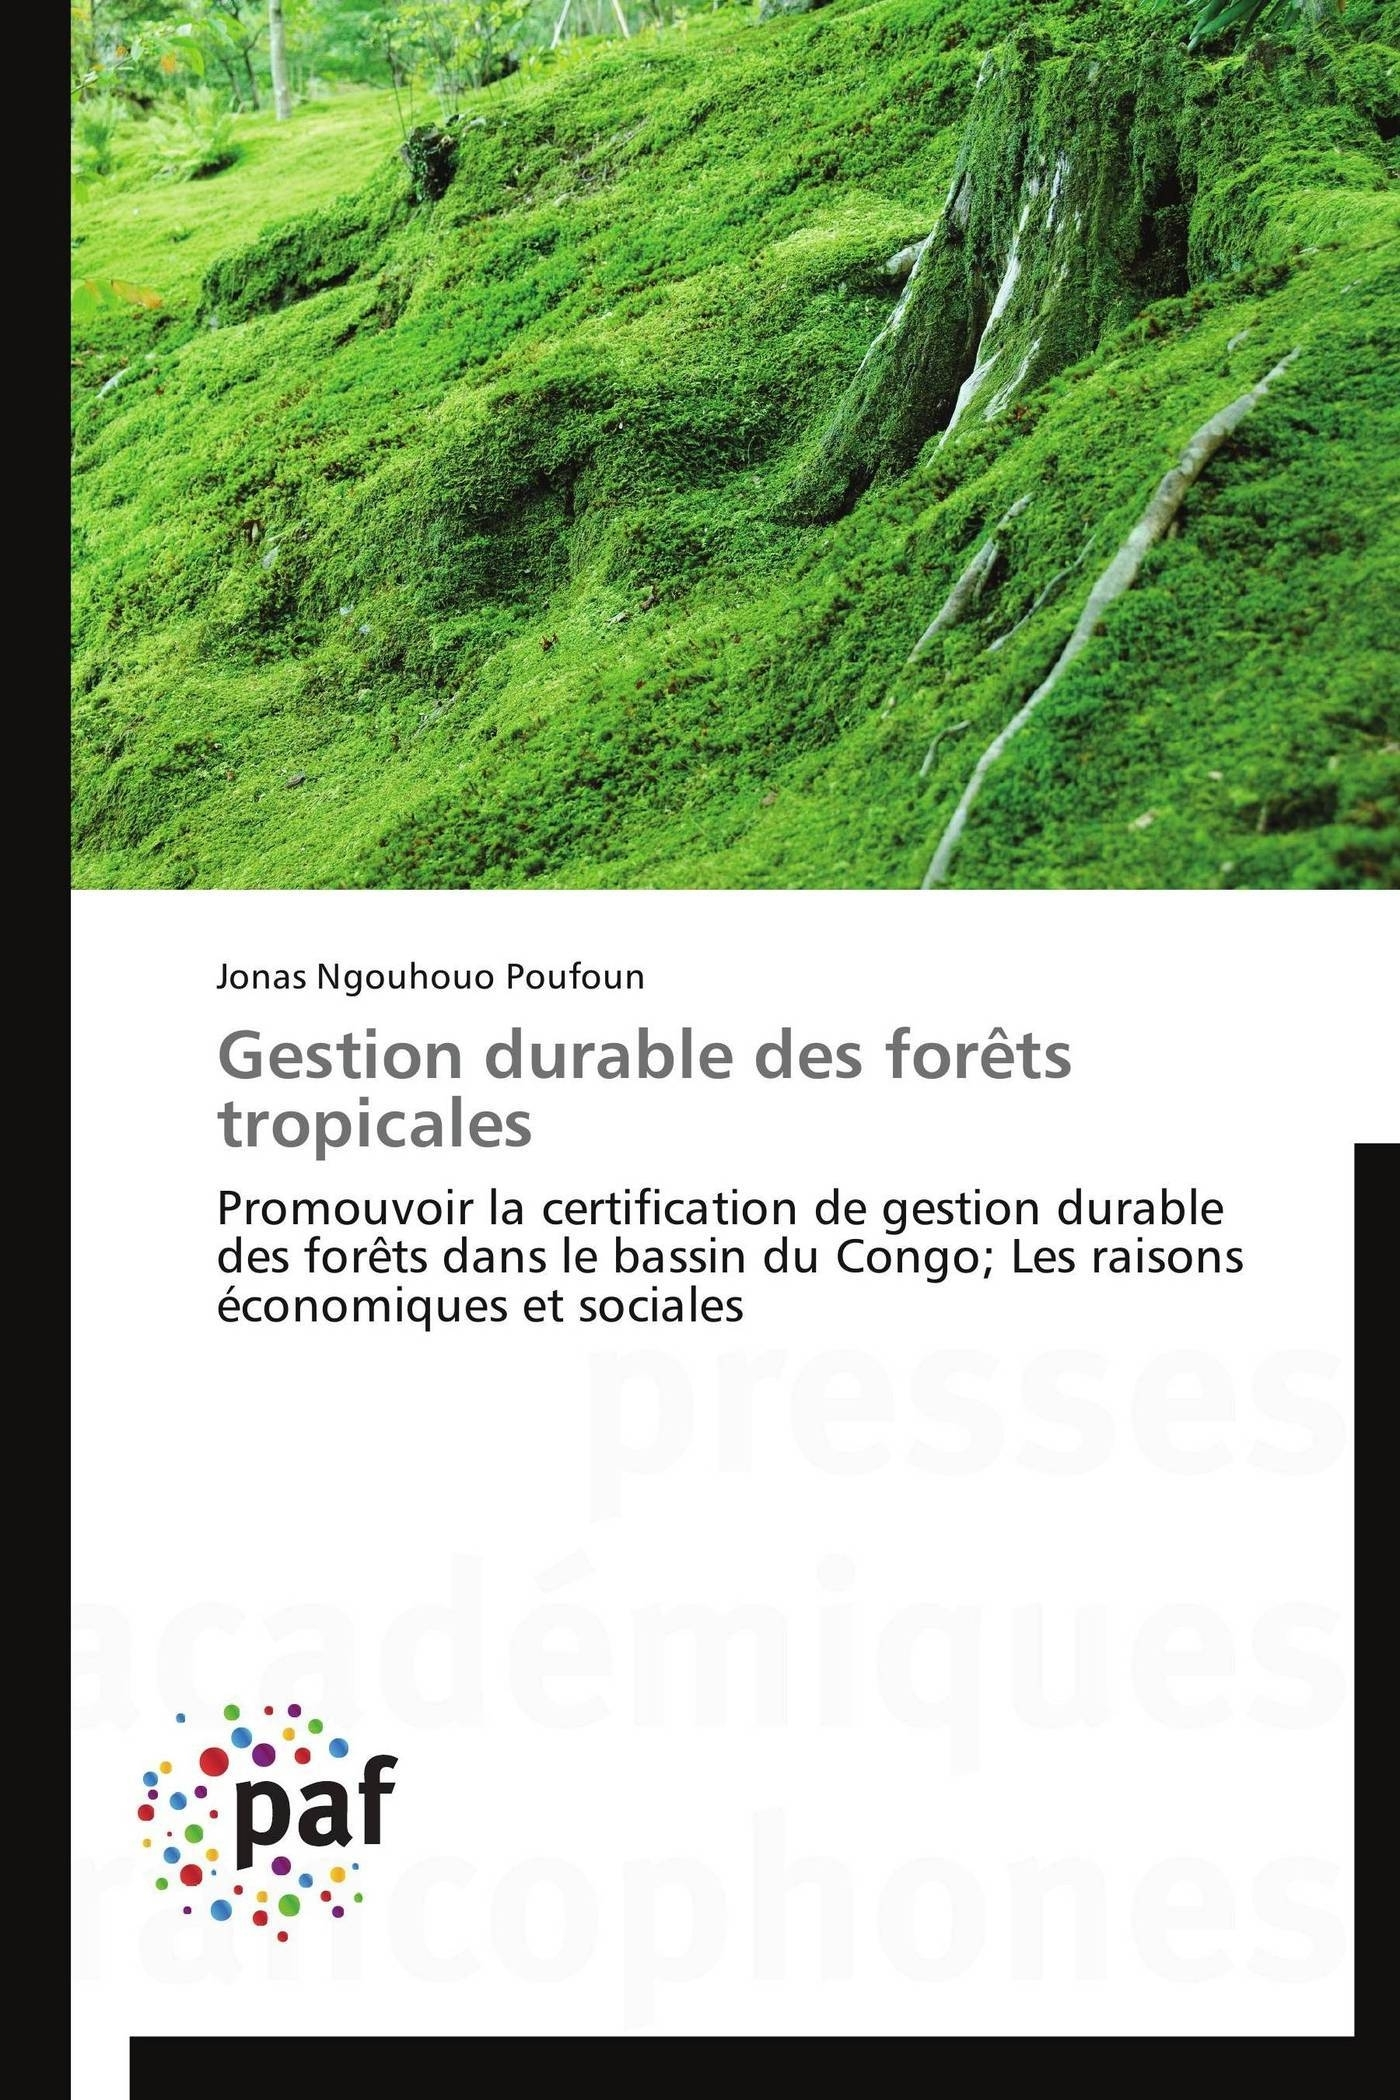 GESTION DURABLE DES FORETS TROPICALES